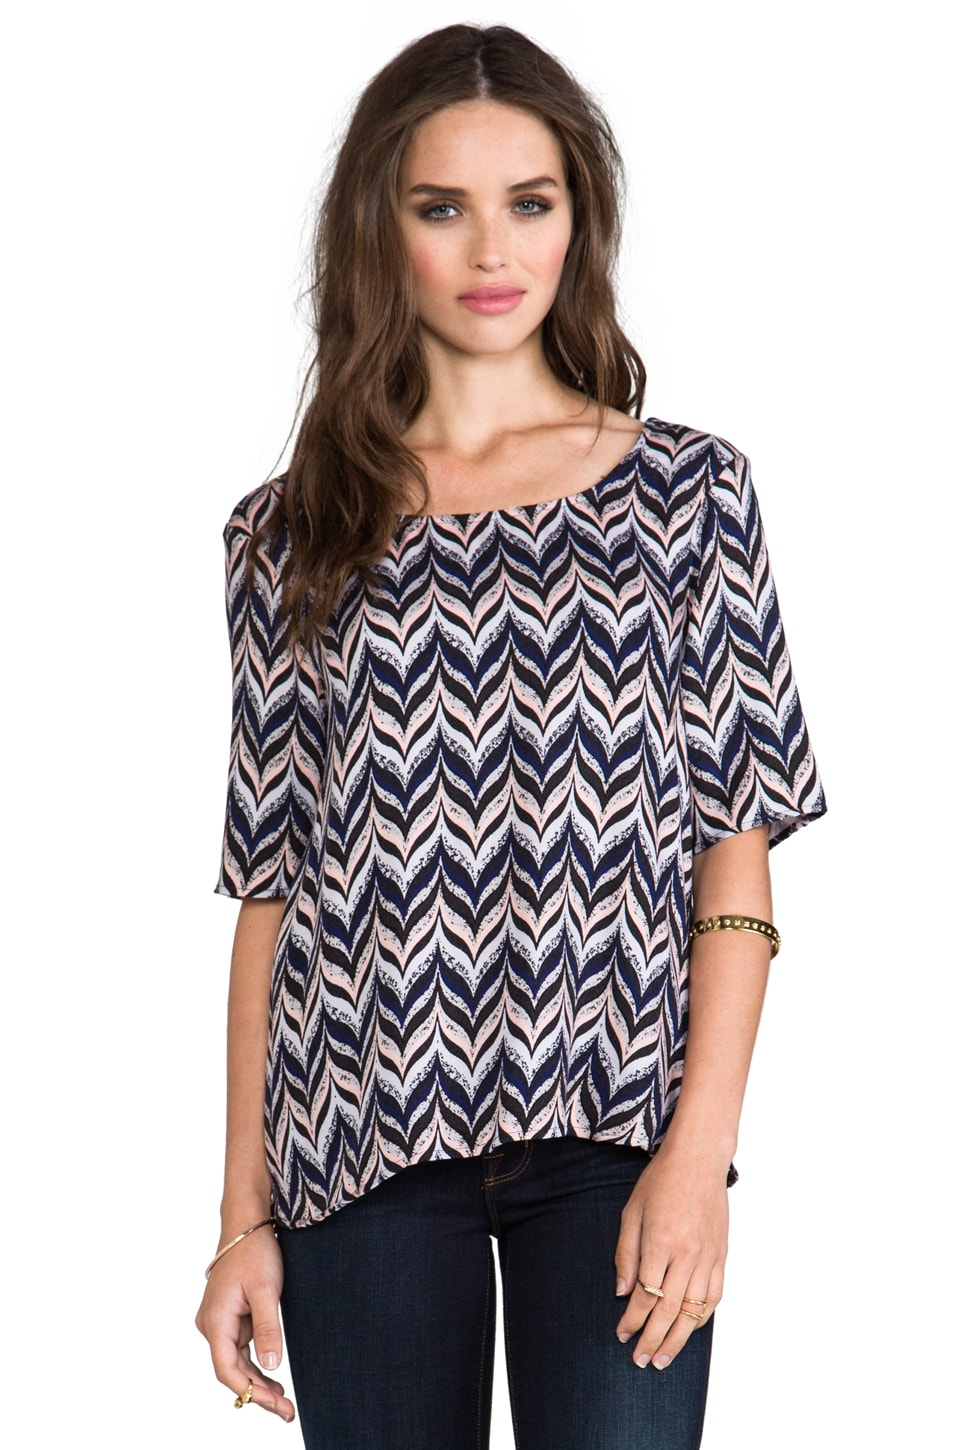 Ella Moss Quill Zig Zag Top in Midnight